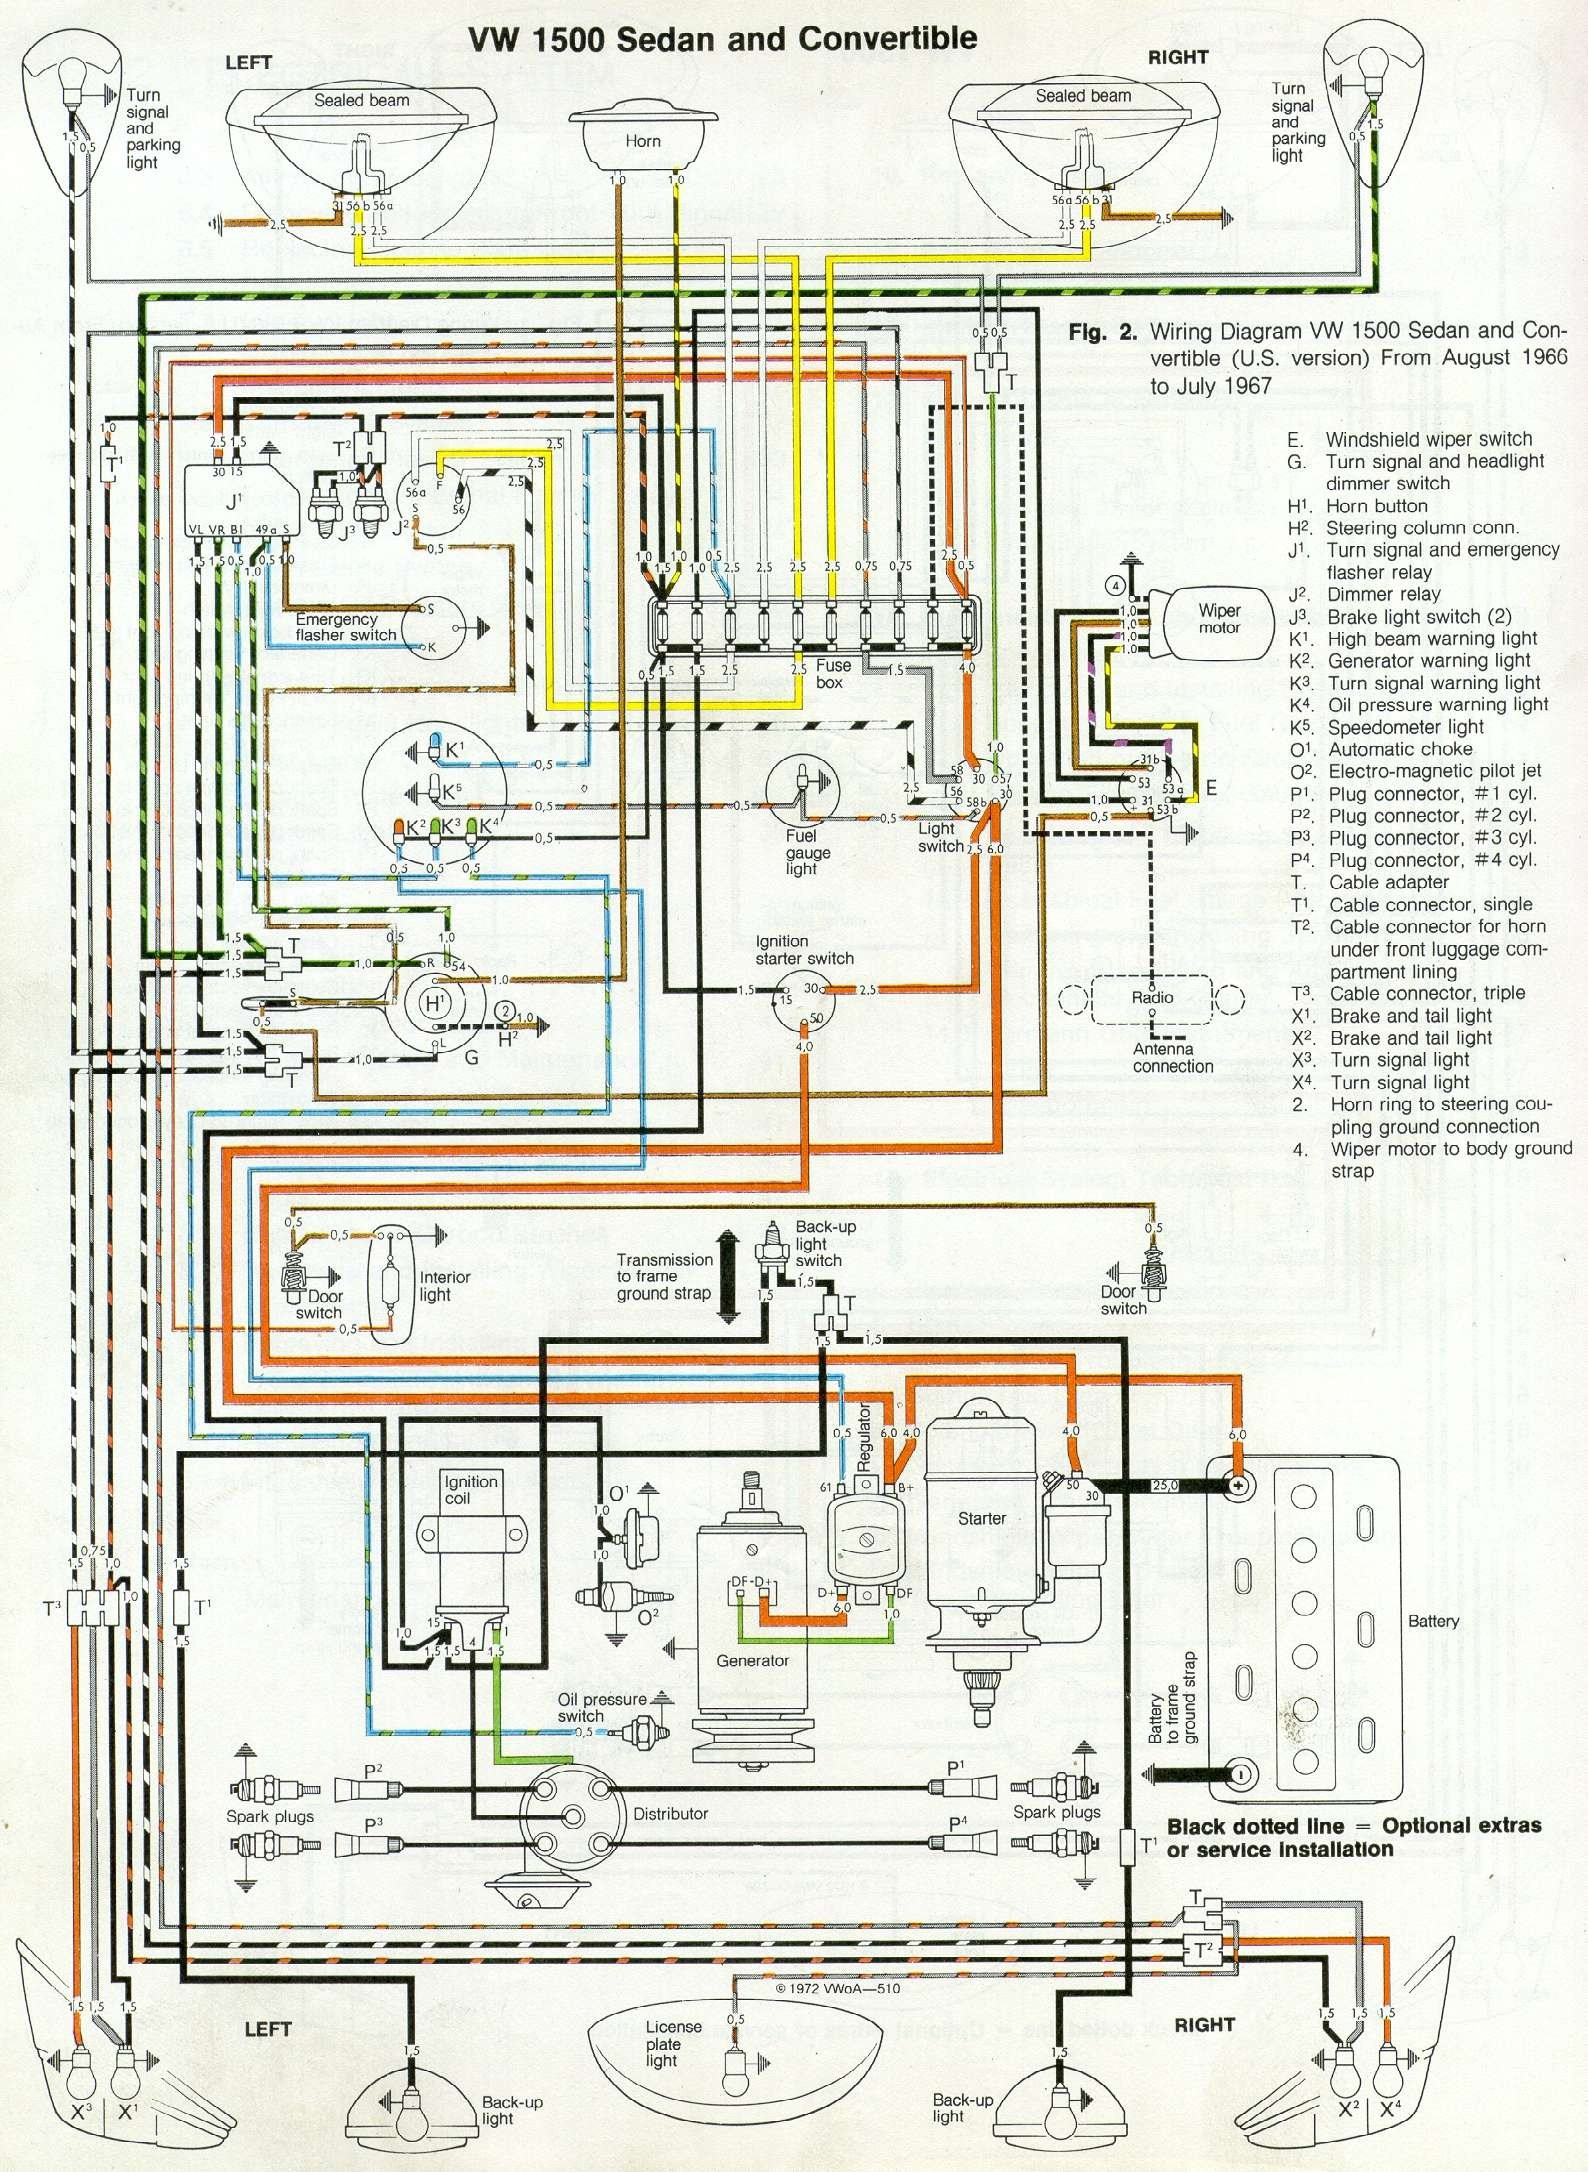 VW Beetle Wiring Digram 67 beetle wiring diagram u s version 1967 vw beetle vw wiring diagrams at webbmarketing.co